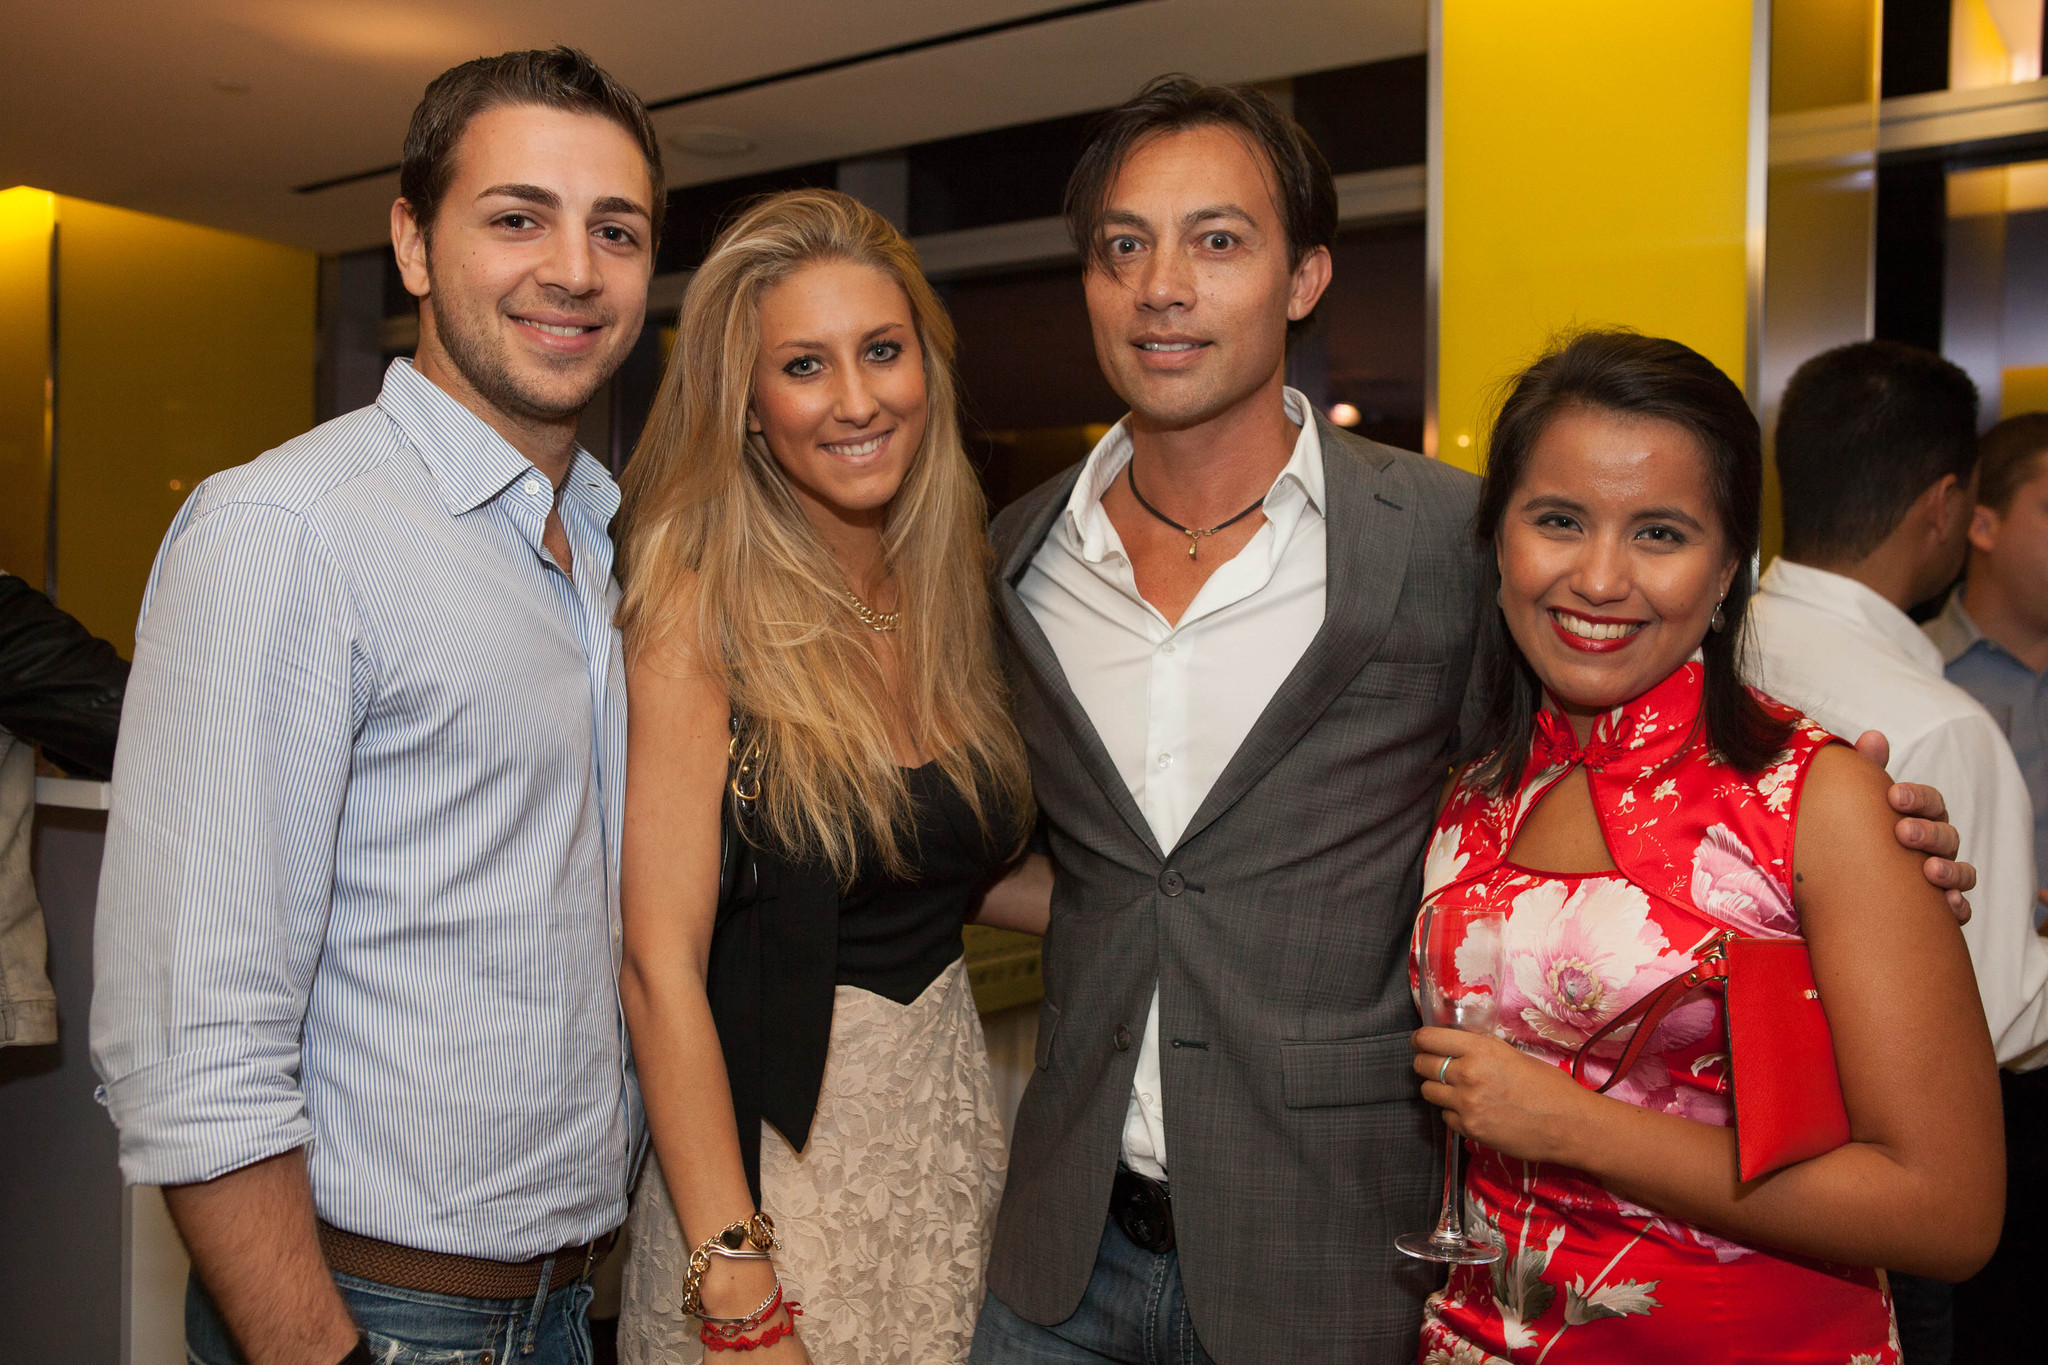 Society Scene photos - A celebration of the opening of BrickellHouse, an ultra-luxury condo tower in Miami